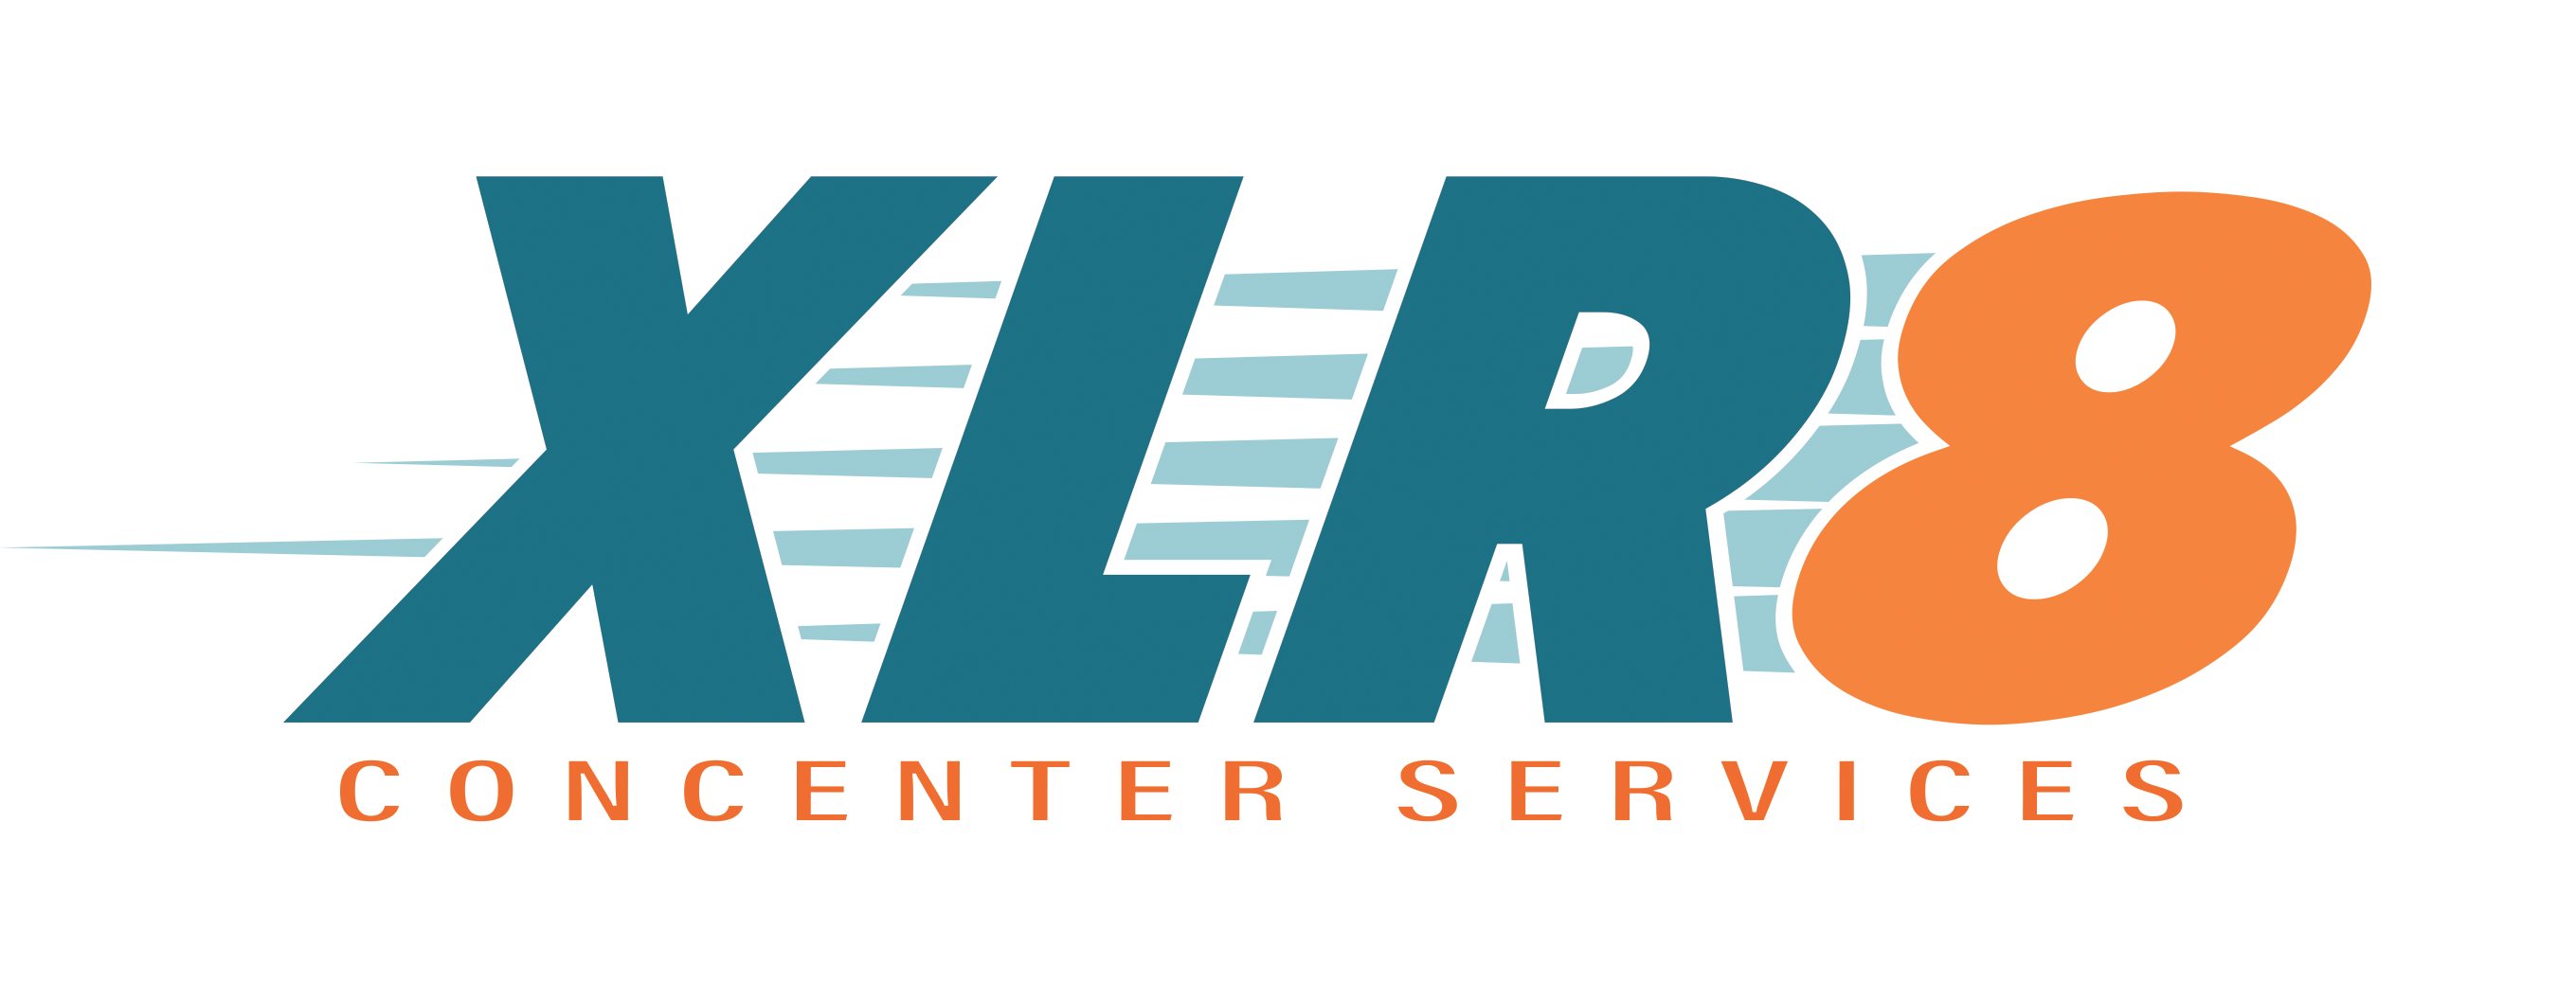 XLR8 Concenter Services